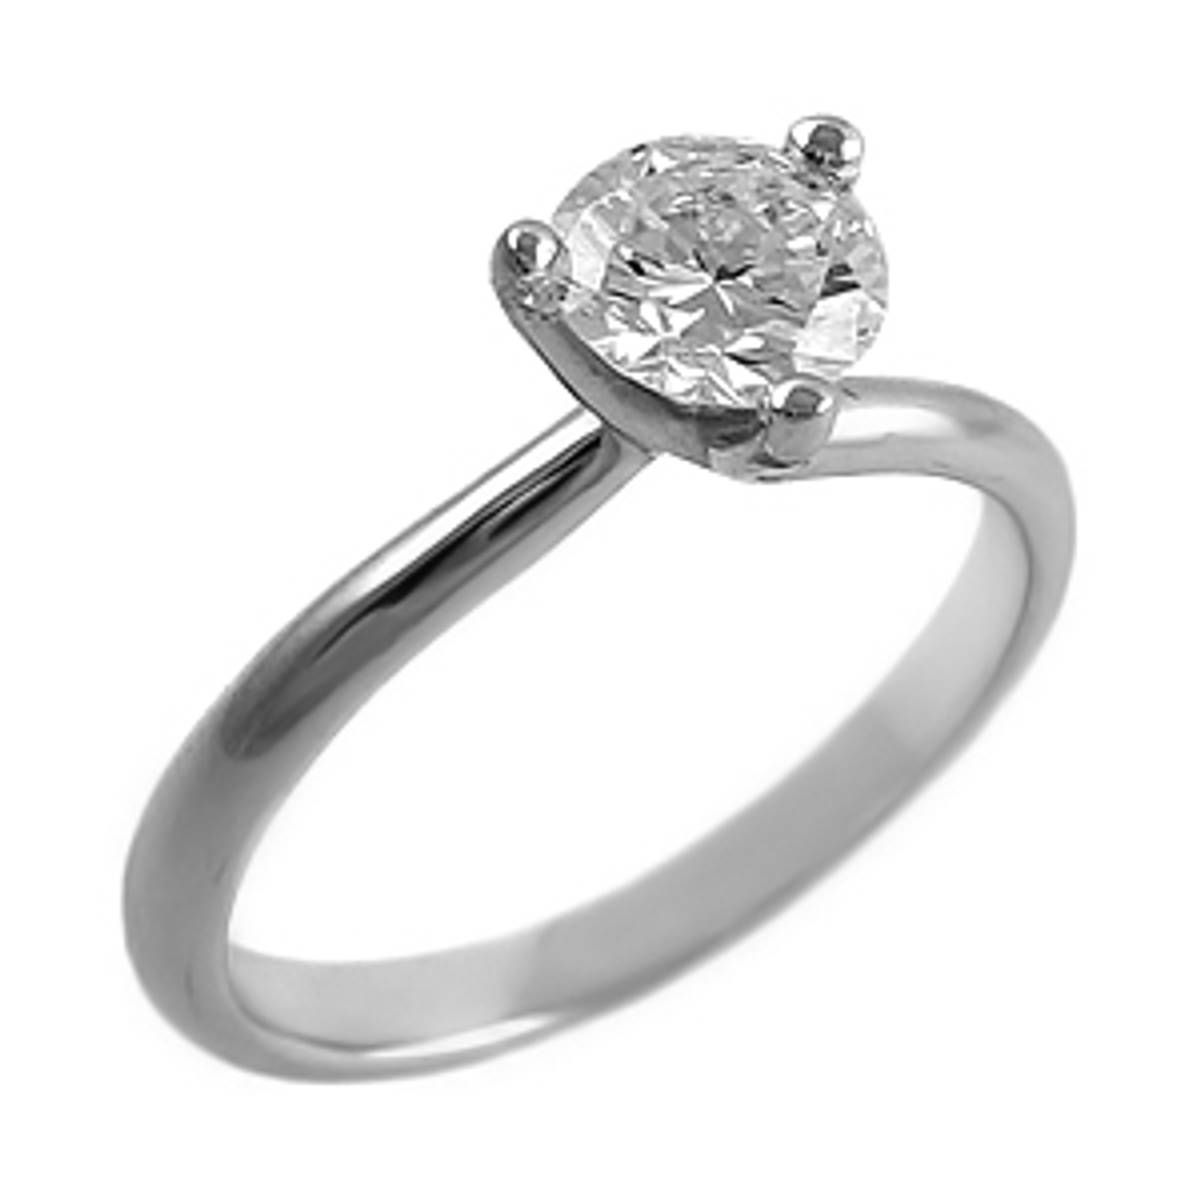 Irish made 0.65ct diamond engagement ring in 18ct white goldColour:H/IClarity:VSI